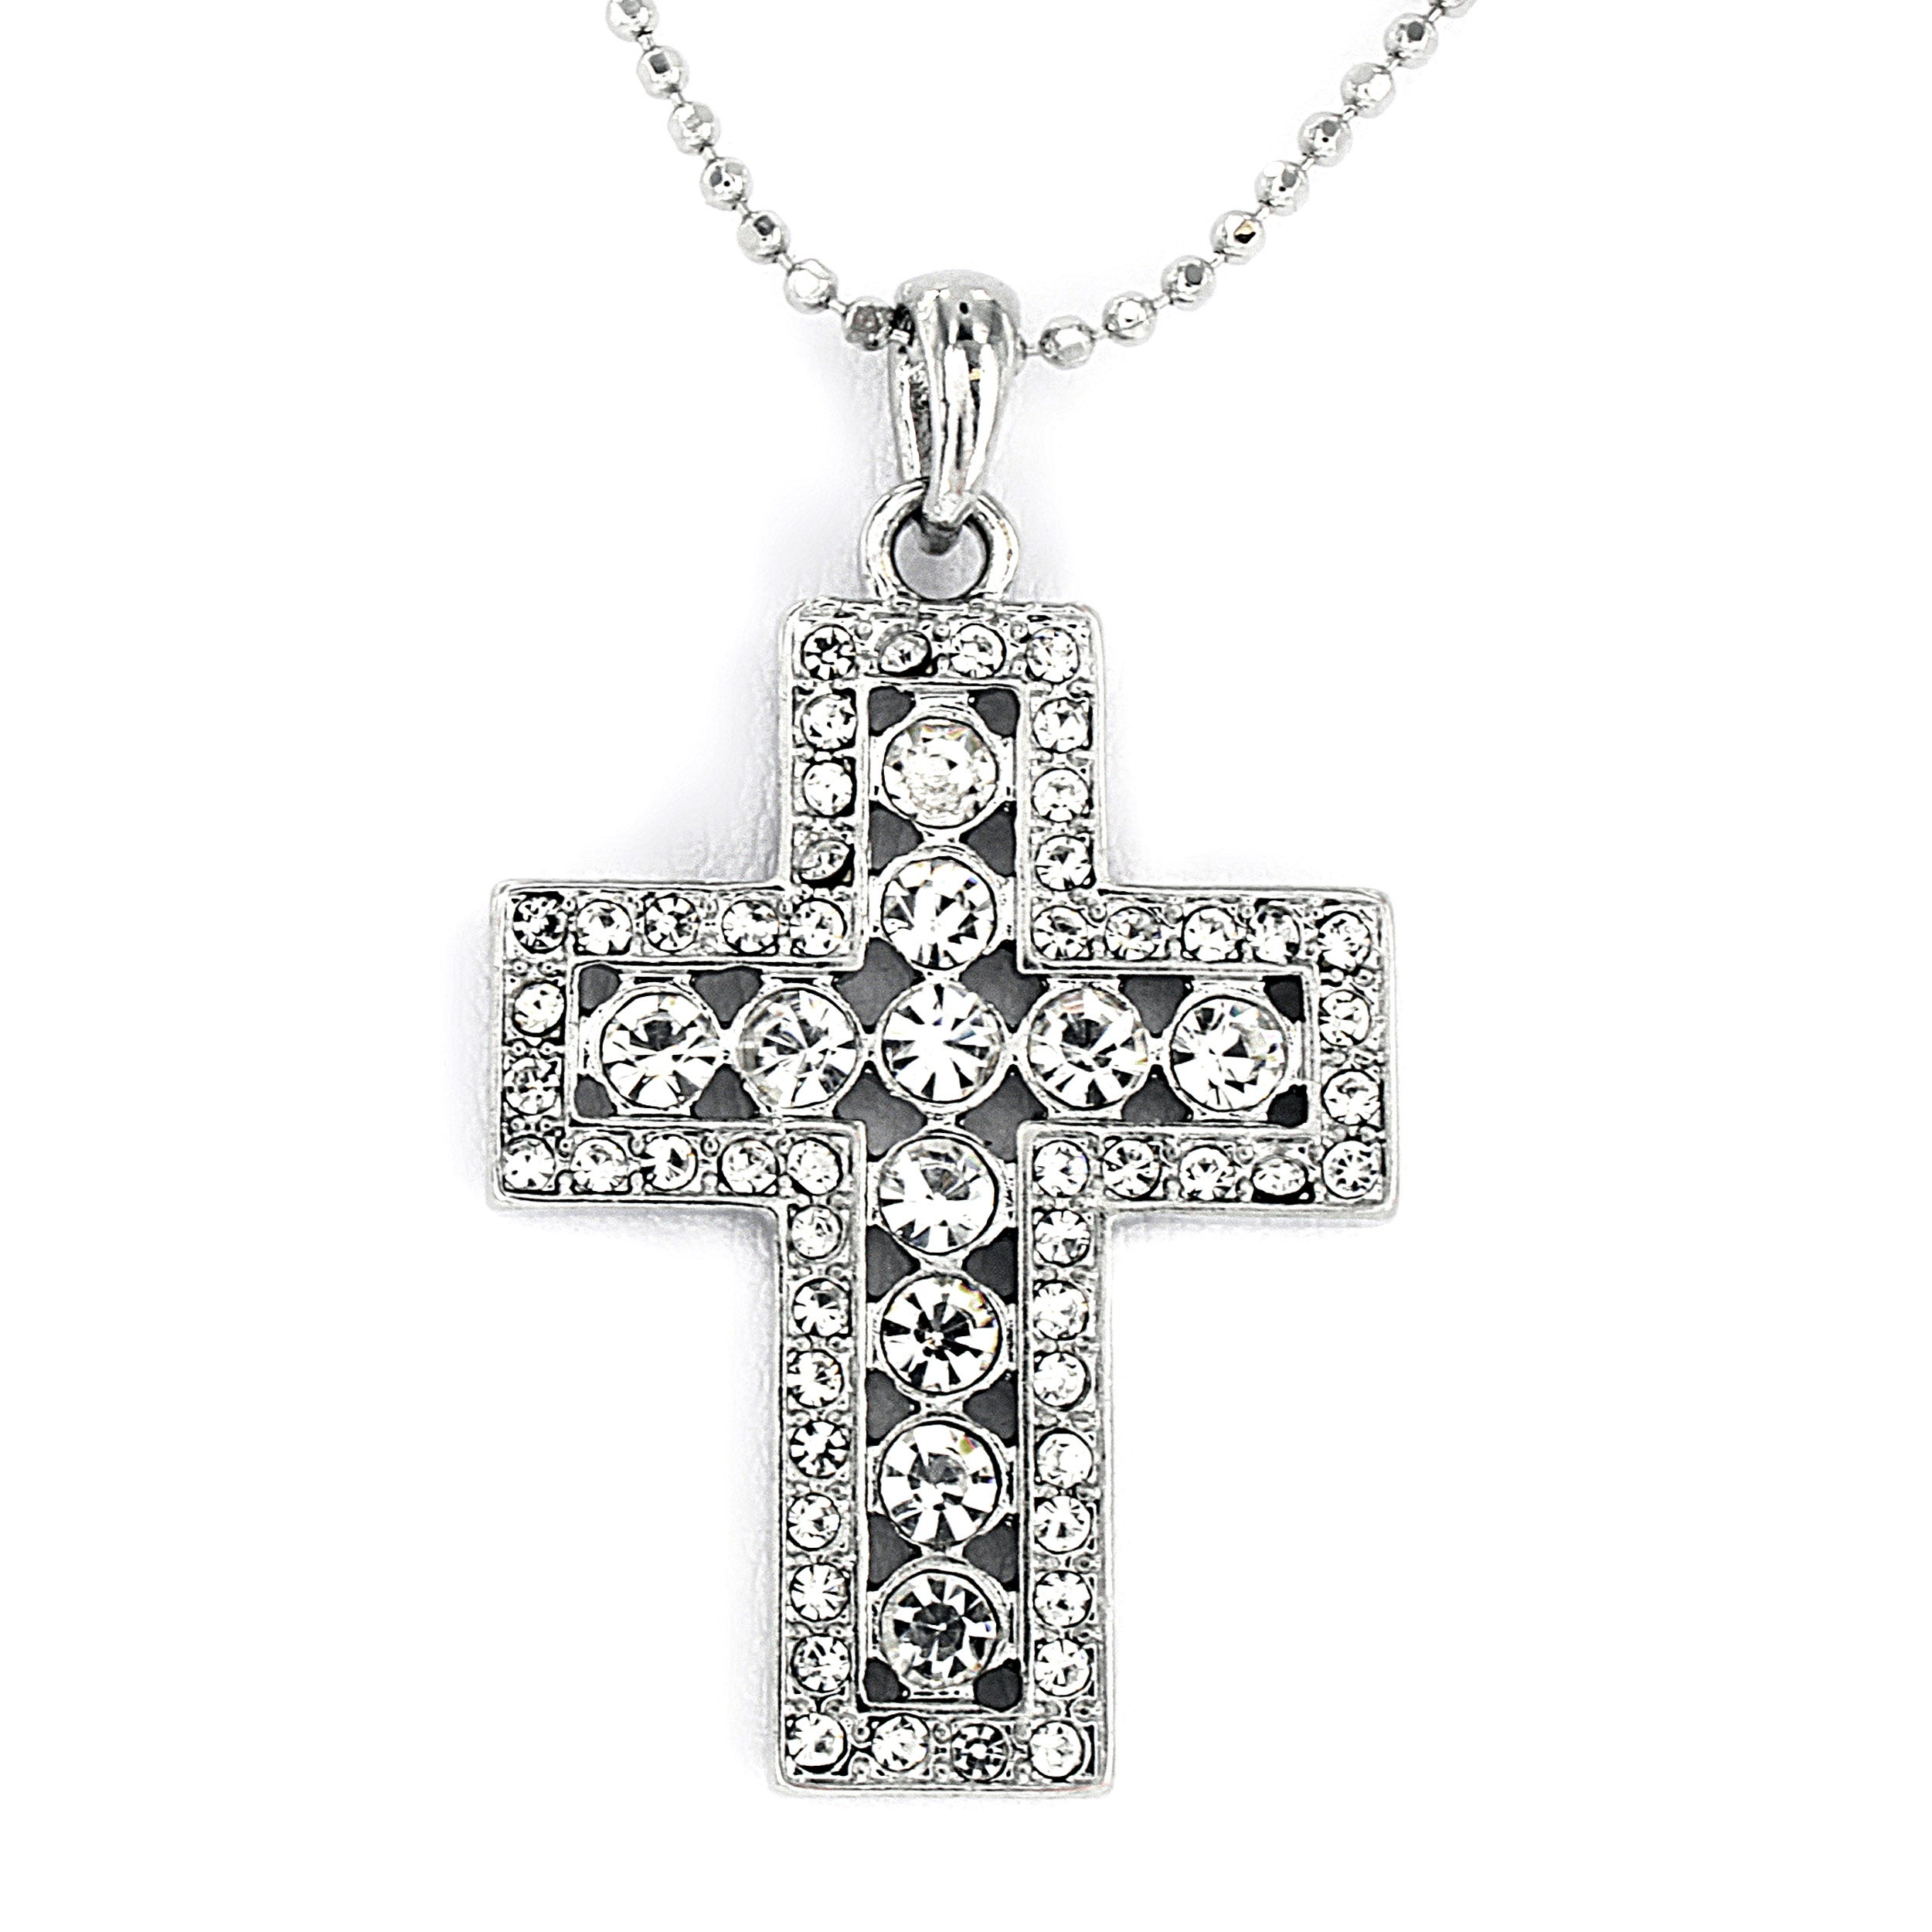 Polished Silvertone Cross with Crystals Necklace